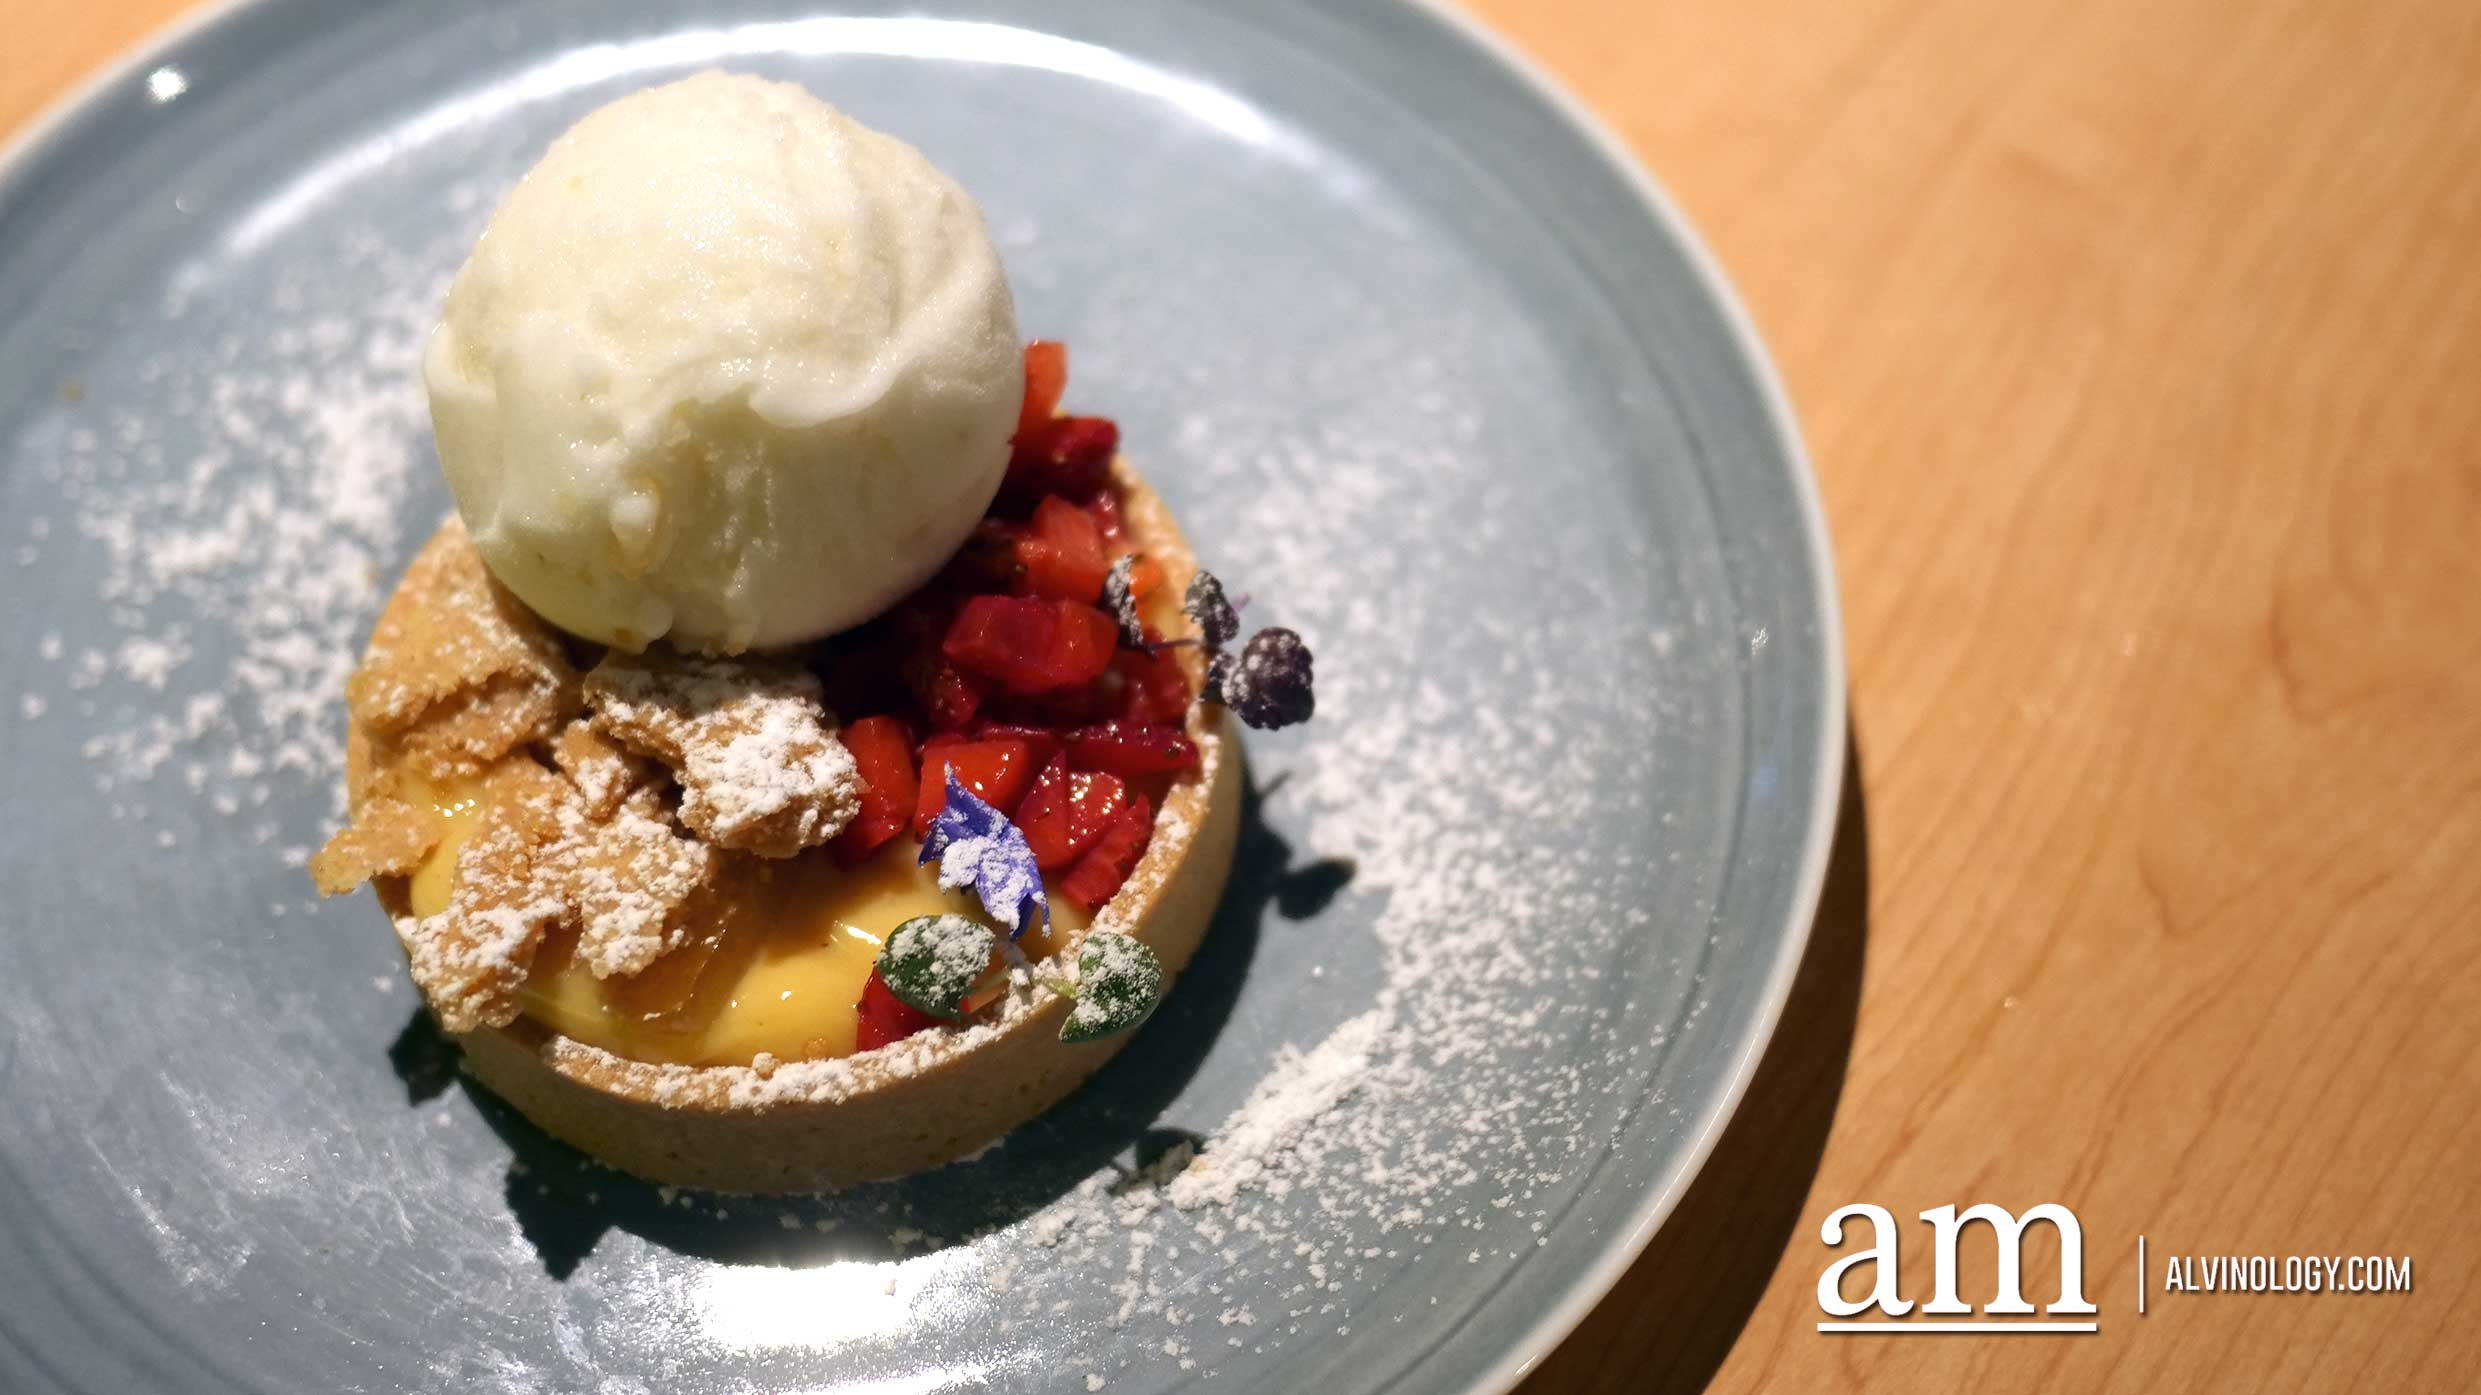 Lemon Tart ($9) - lemon custard, crumble, sorbet